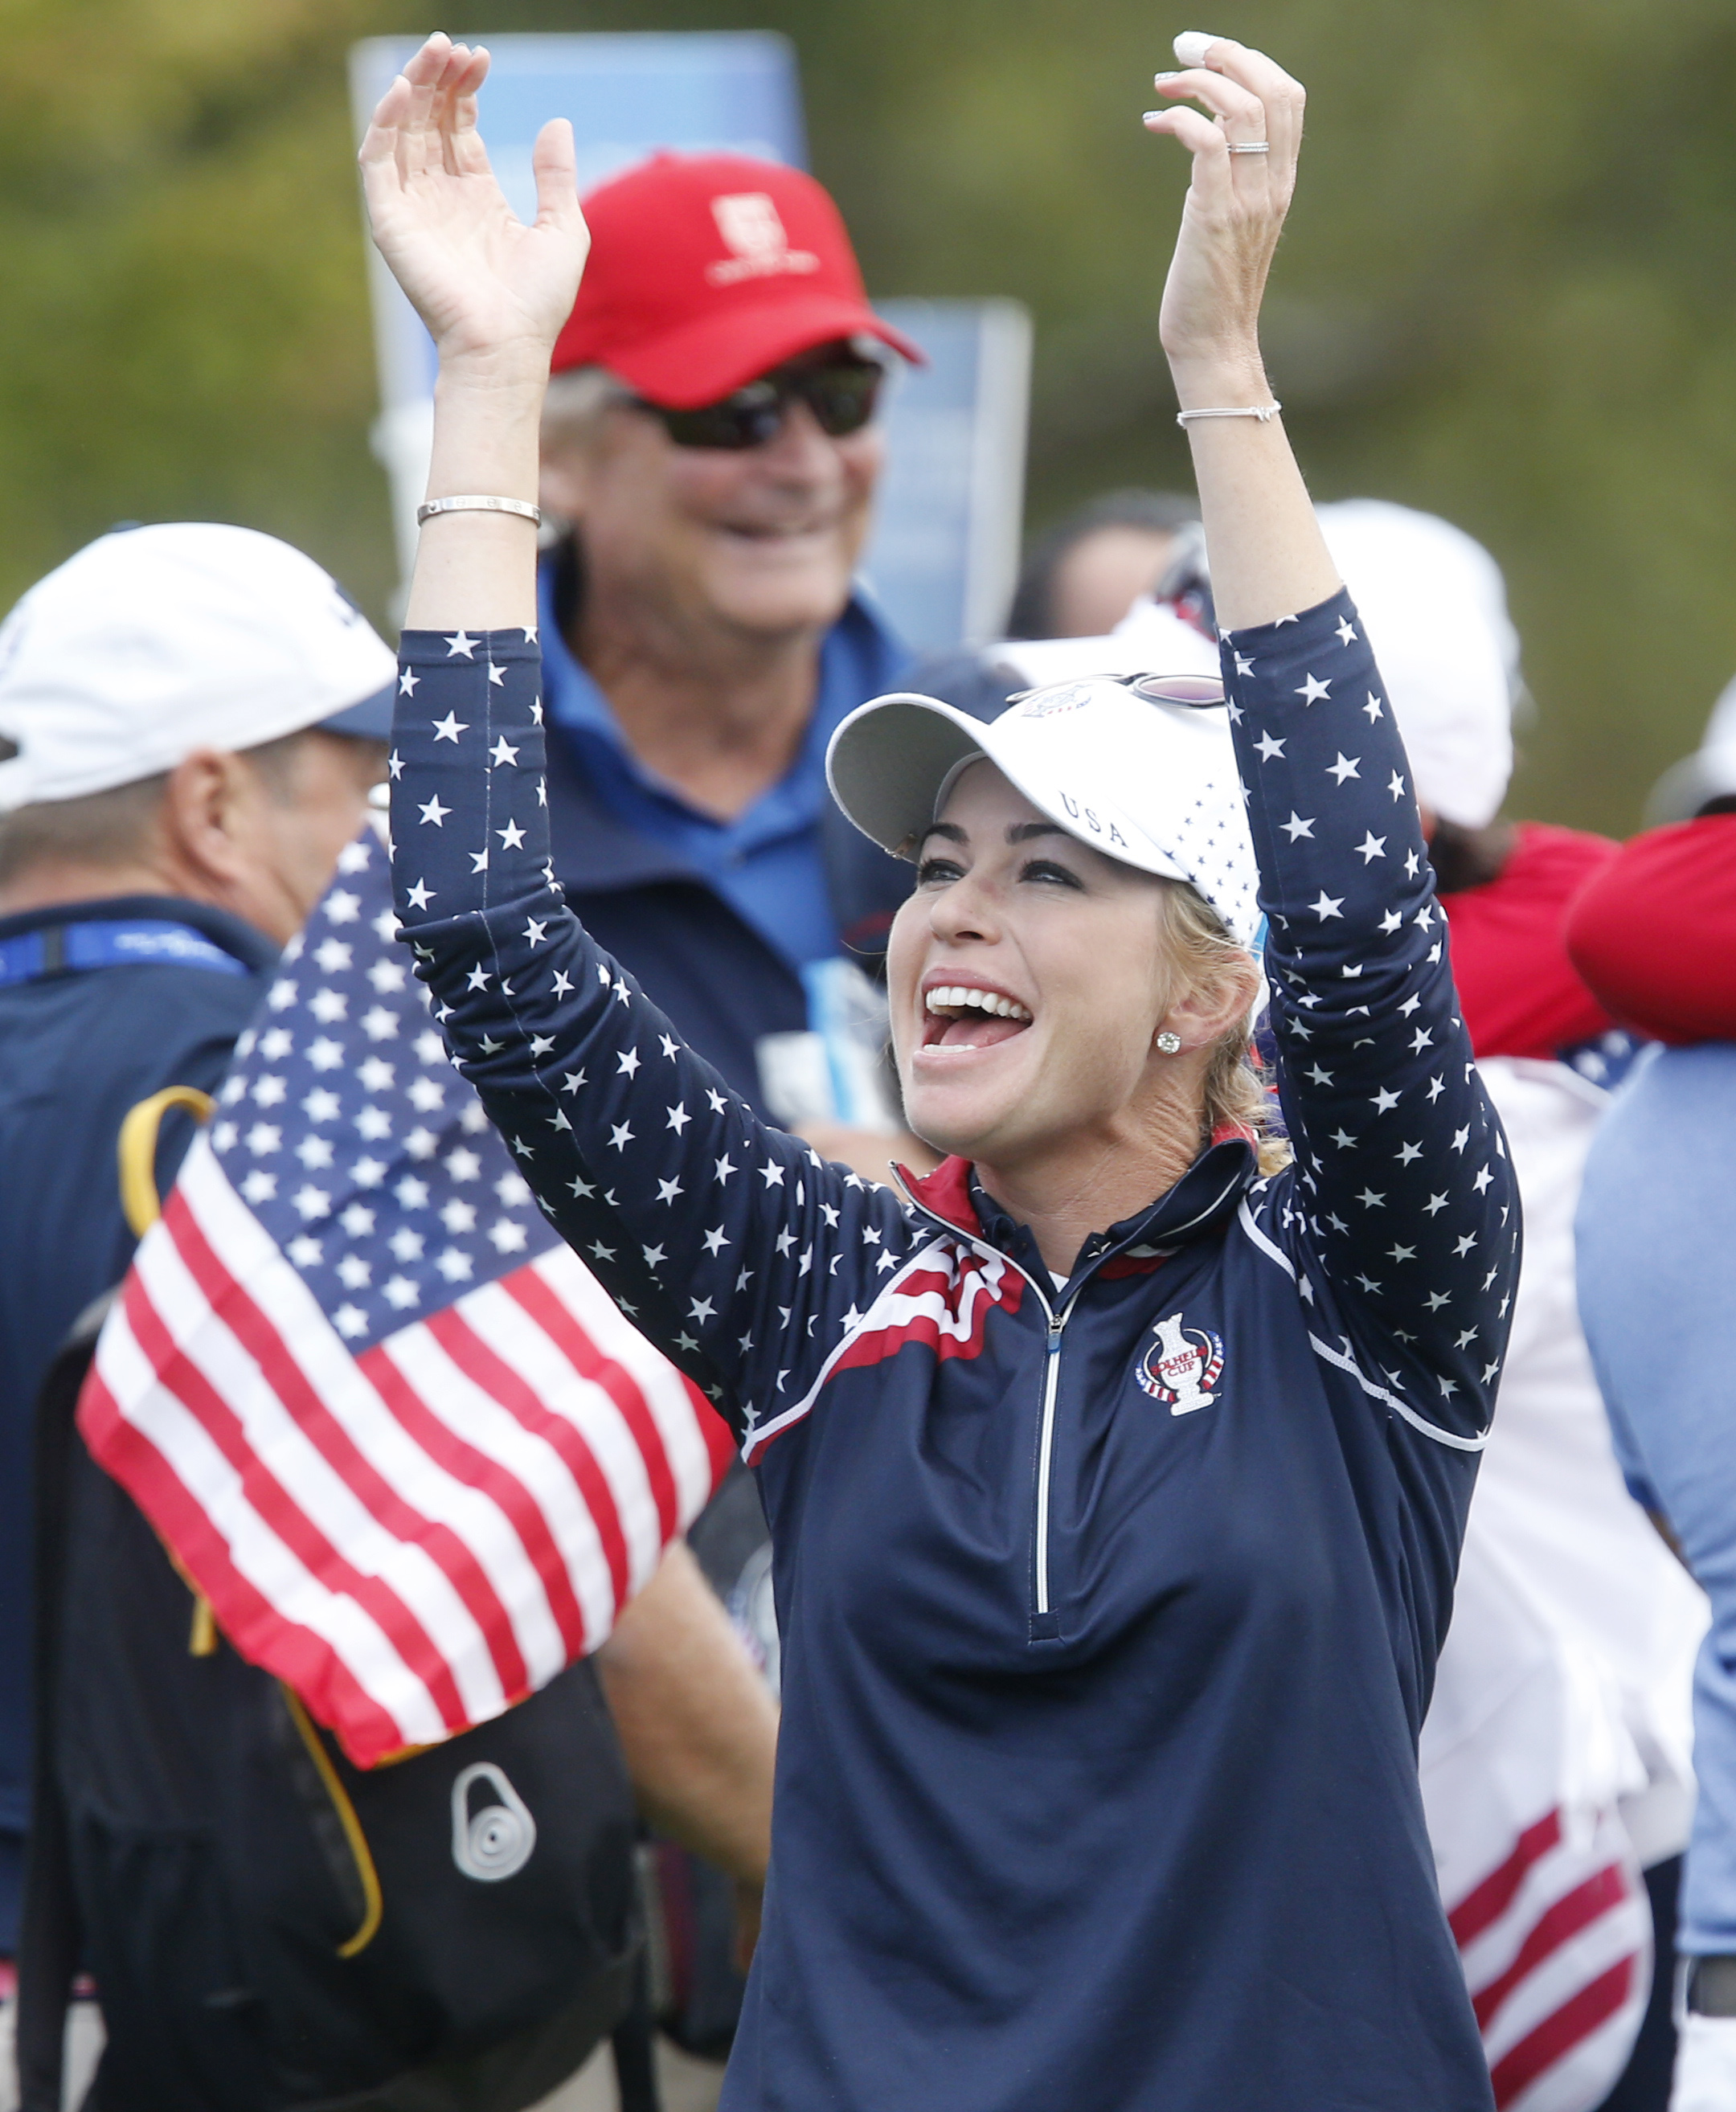 U.S. golfer Paula Creamer celebrates after she made the final point on Day3 of the Golf Solheim Cup in St.Leon-Rot, Germany, Sunday, Sept. 20, 2015.  Paula Creamer defeated Germany's Sandra Gal to complete a remarkable comeback as United States won the So